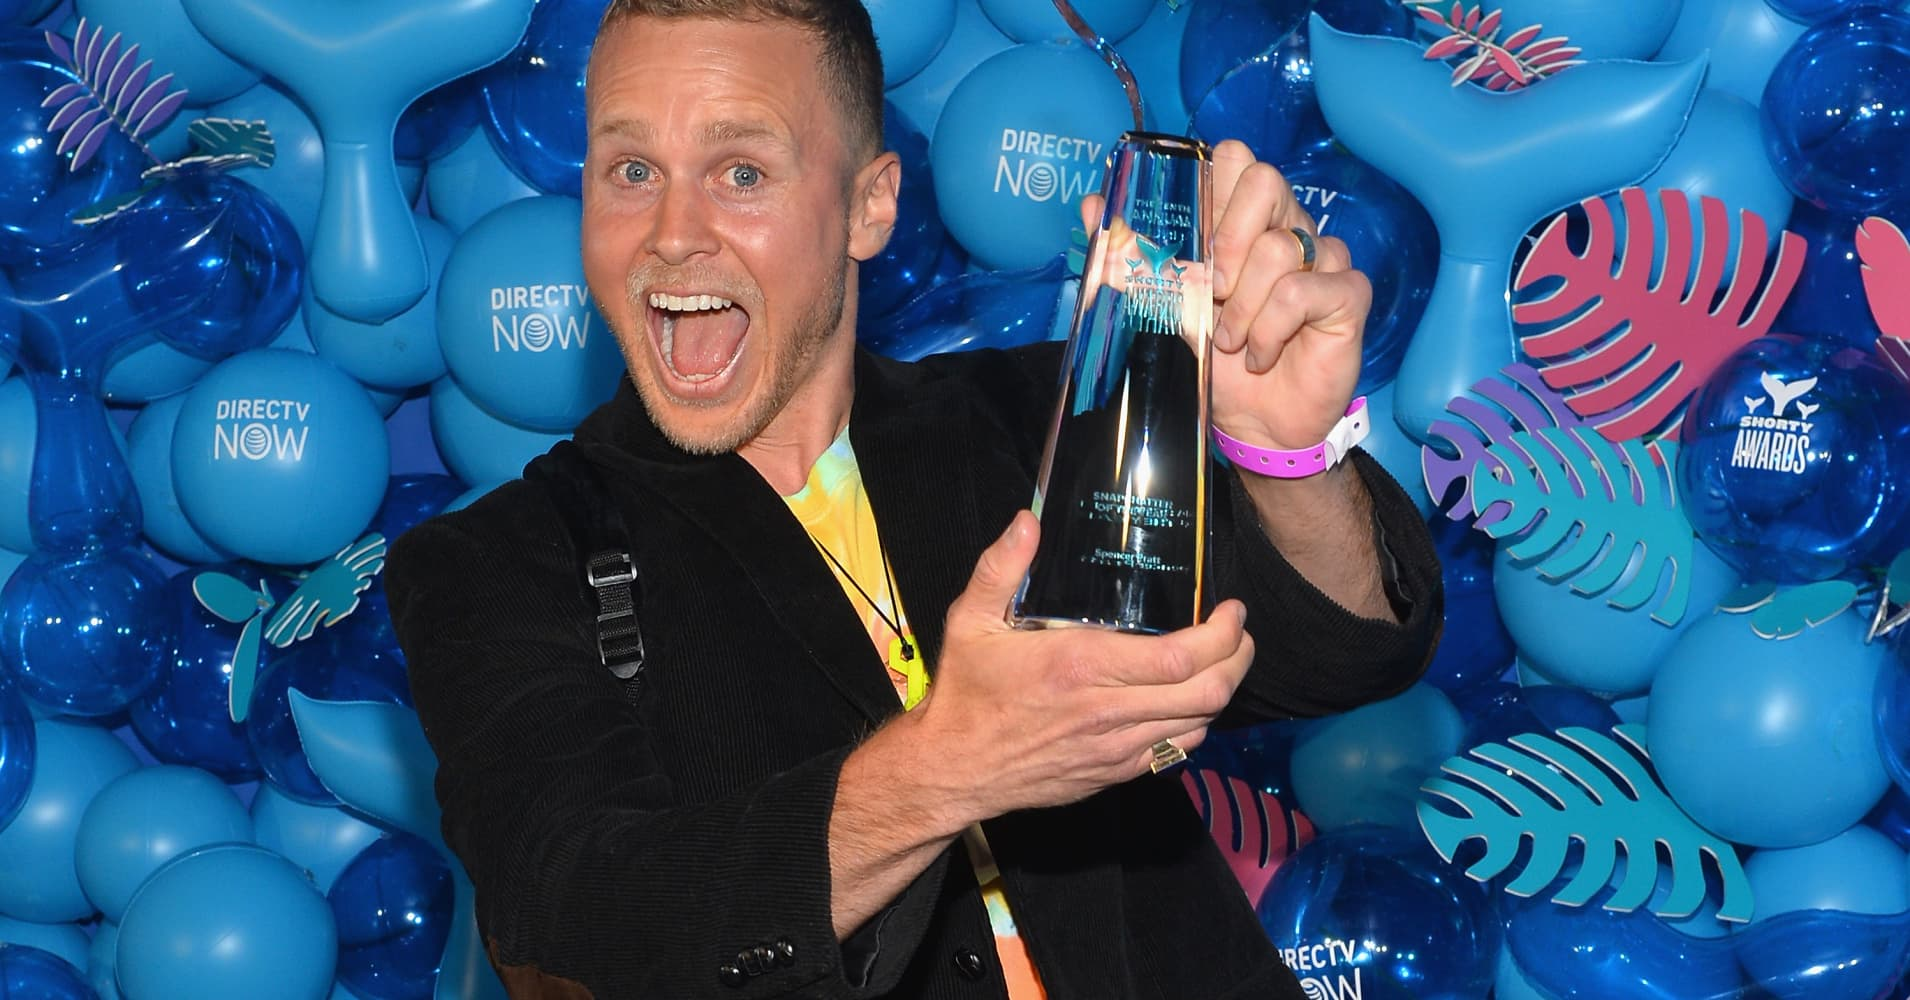 NEW YORK, NY - APRIL 15:  Spencer Pratt poses backstage with the award for Snapchatter of the Year at the 10th Annual Shorty Awards at PlayStation Theater on April 15, 2018 in New York City.  (Photo by Noam Galai/Getty Images for Shorty Awards)